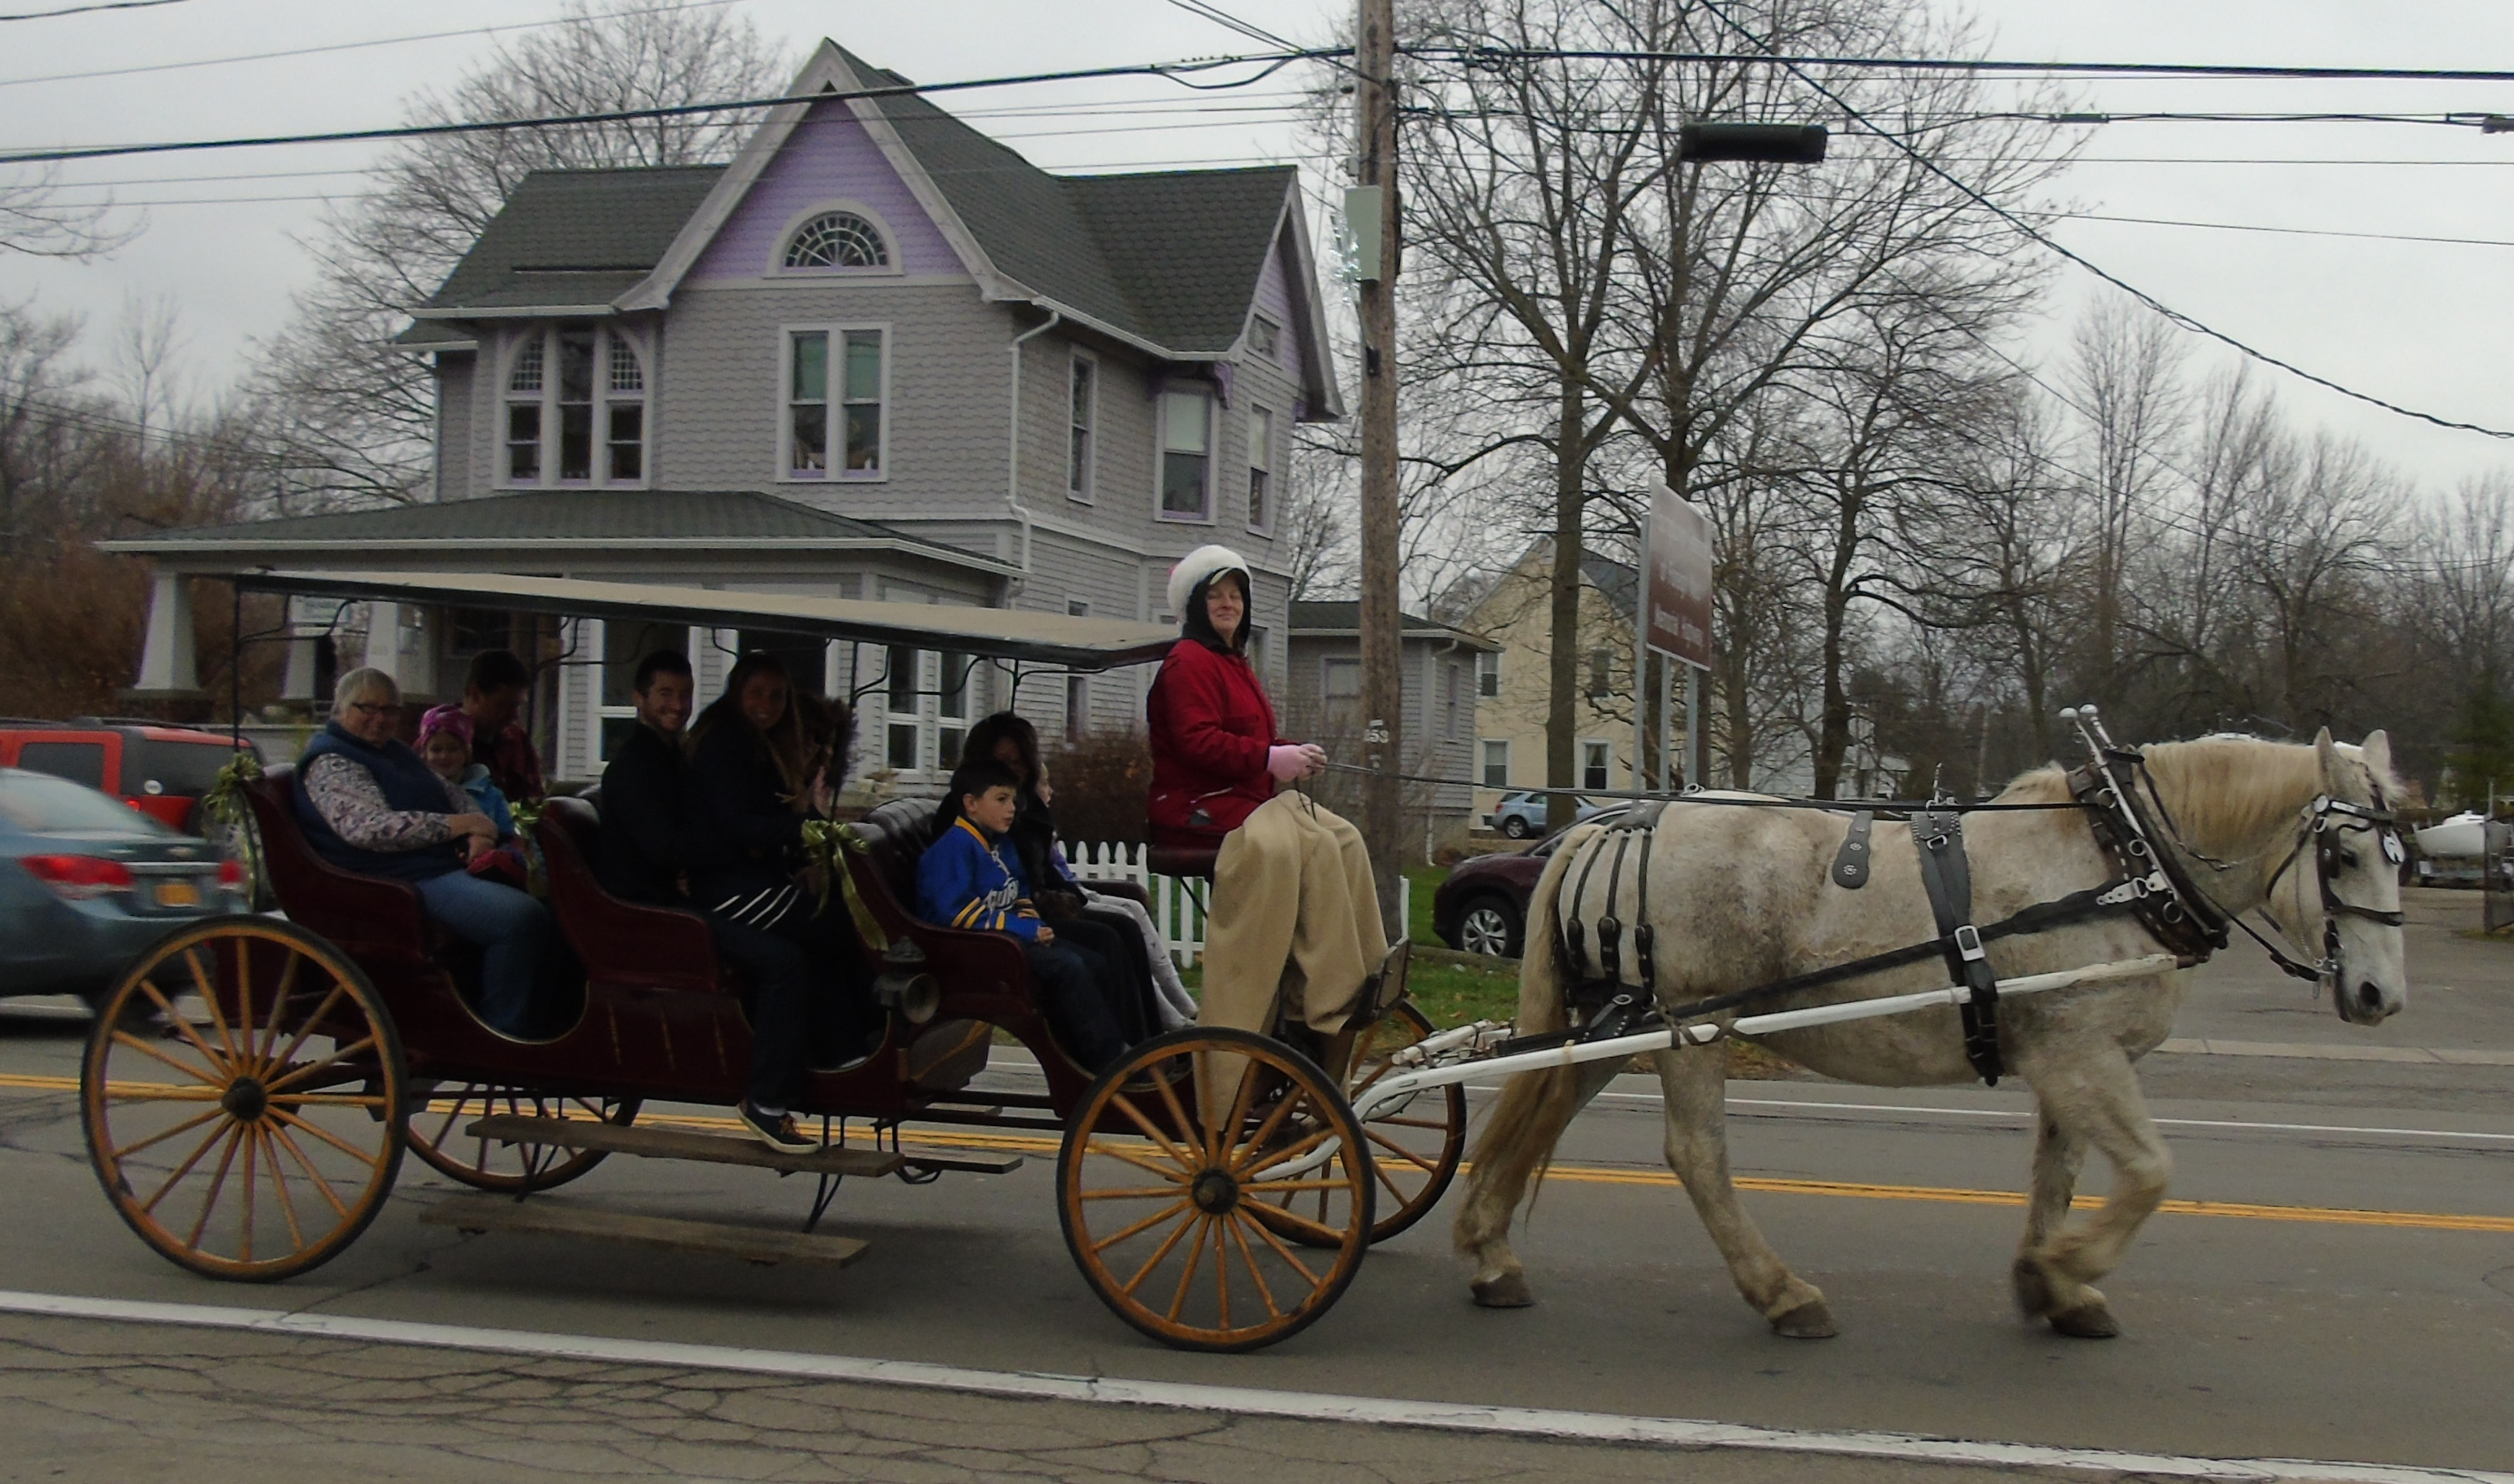 Youngstown's annual Christmas in the Village festivities feature a variety of family-friendly activities, including horse and carriage rides. (Provided photo)